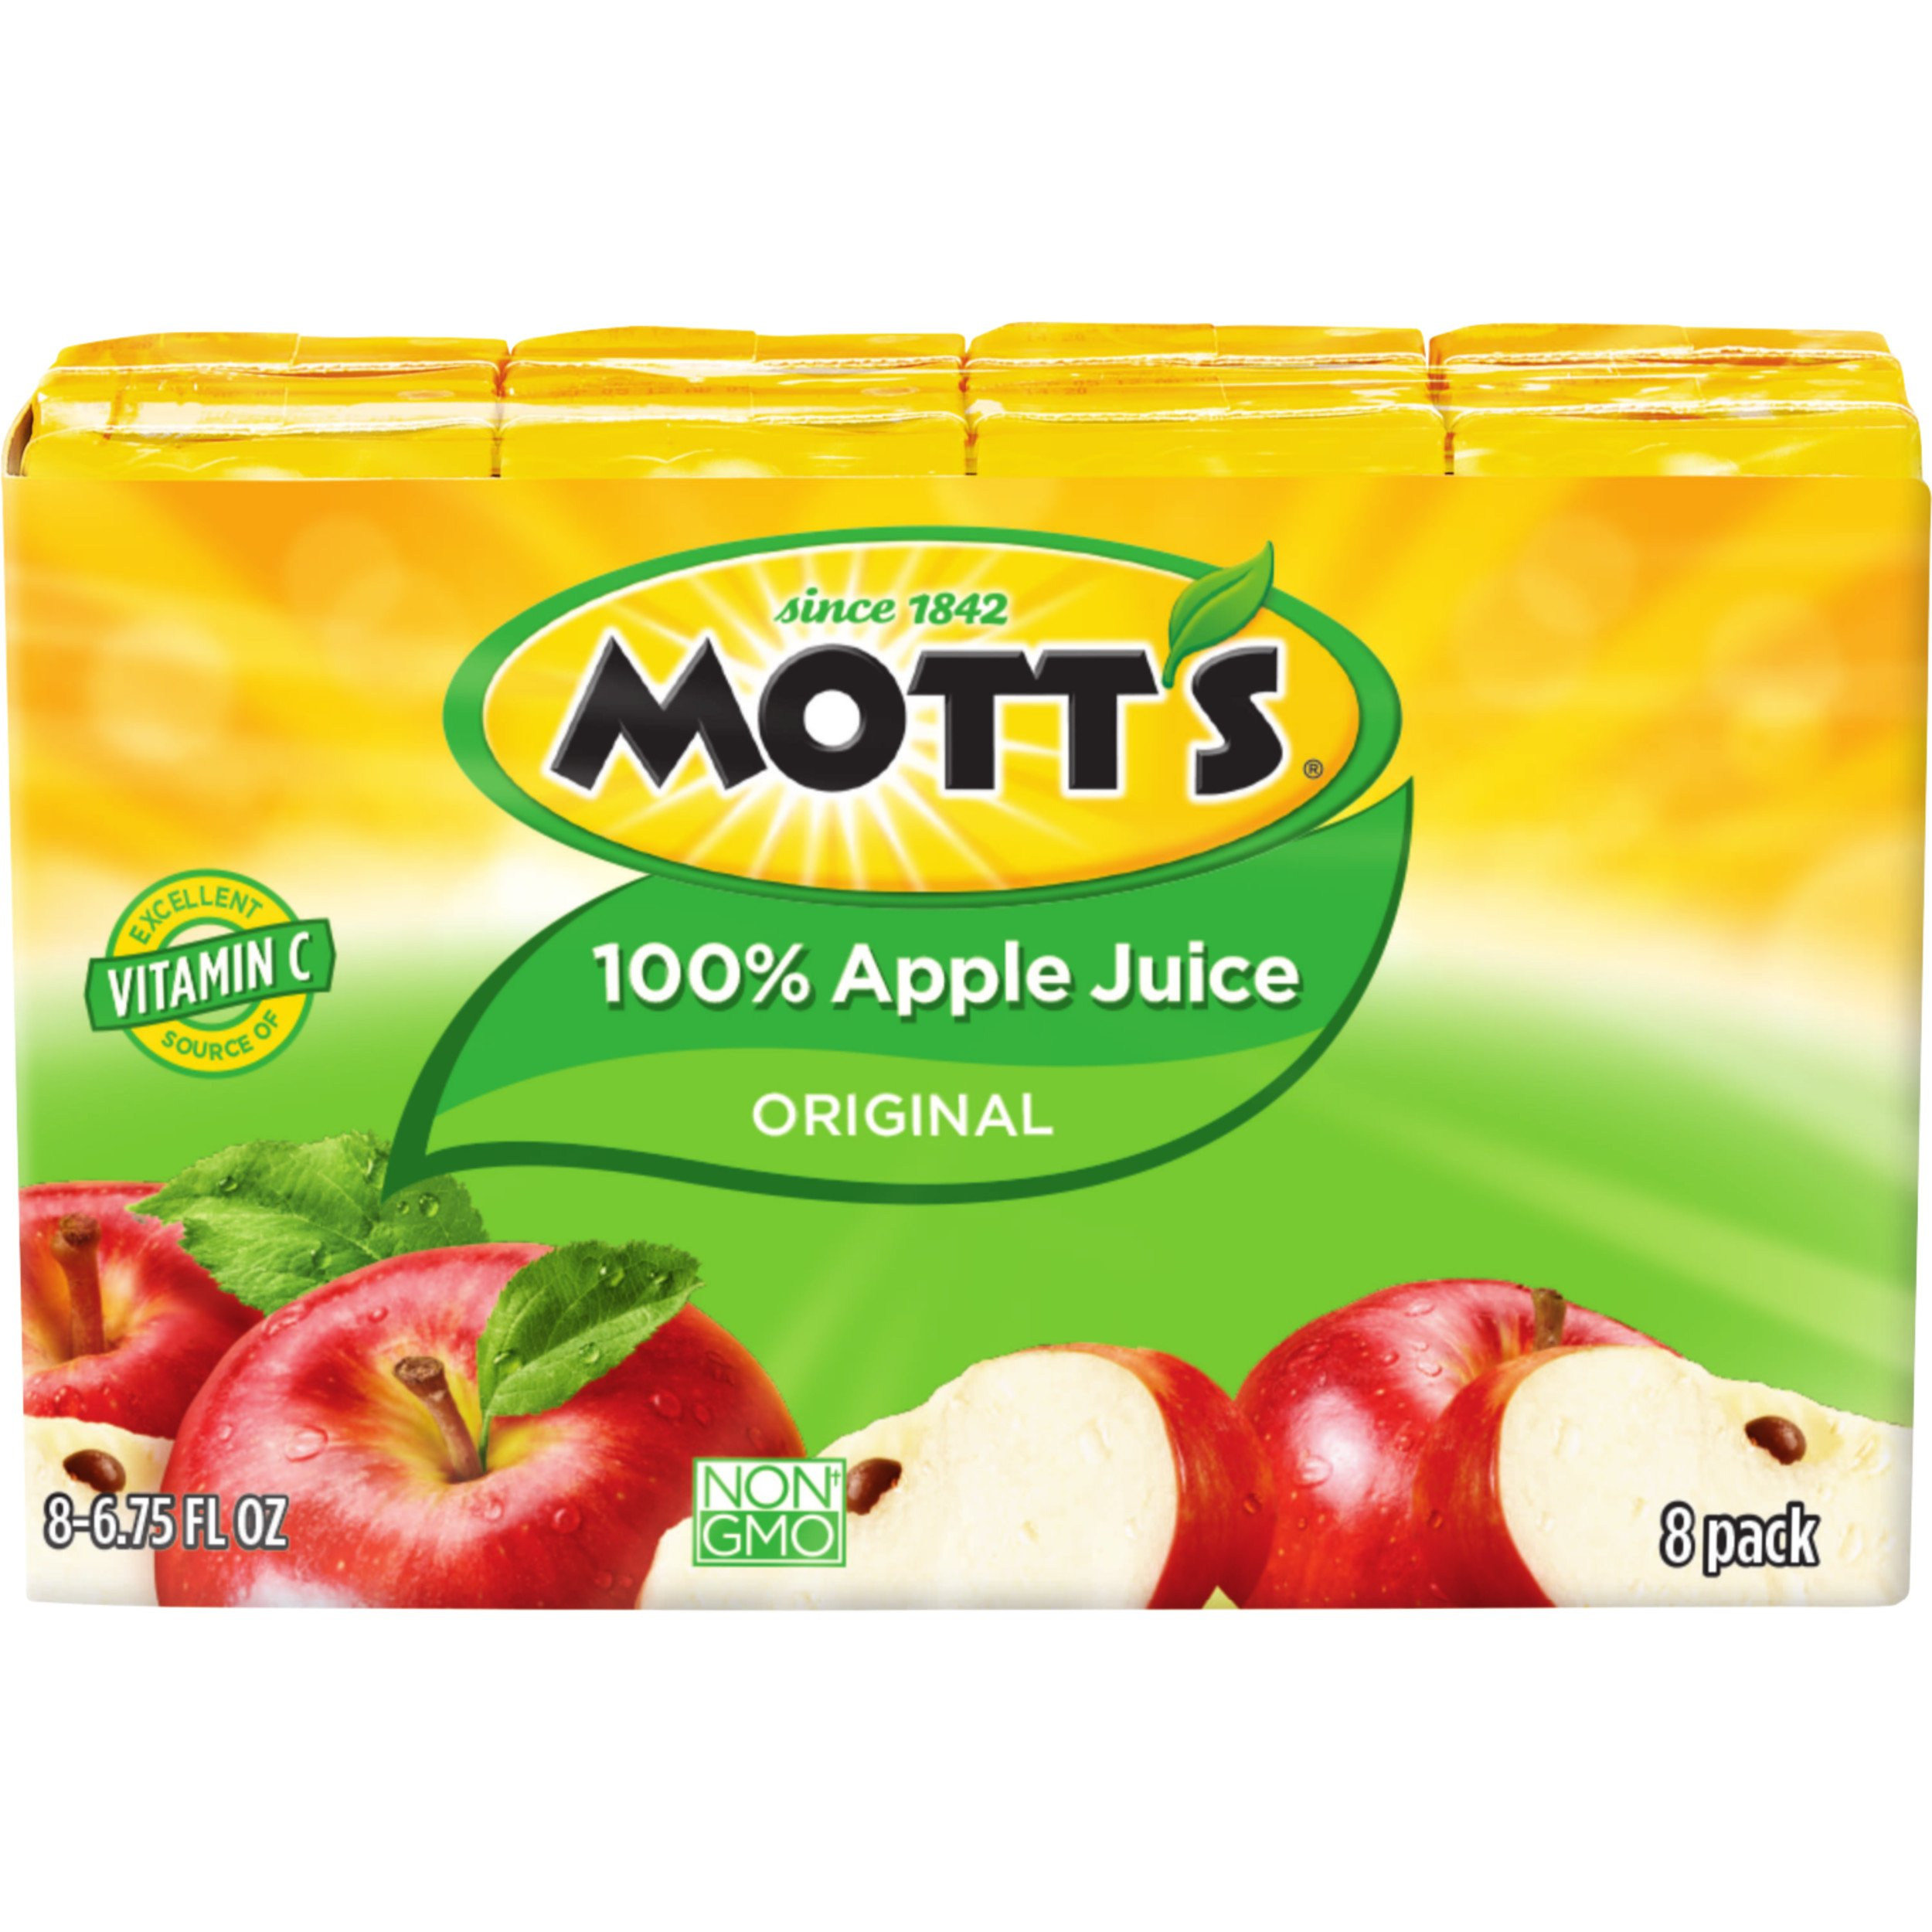 Mott's 100% Original Apple Juice, 6.75 Fluid Ounce Juice Box, 8 Count